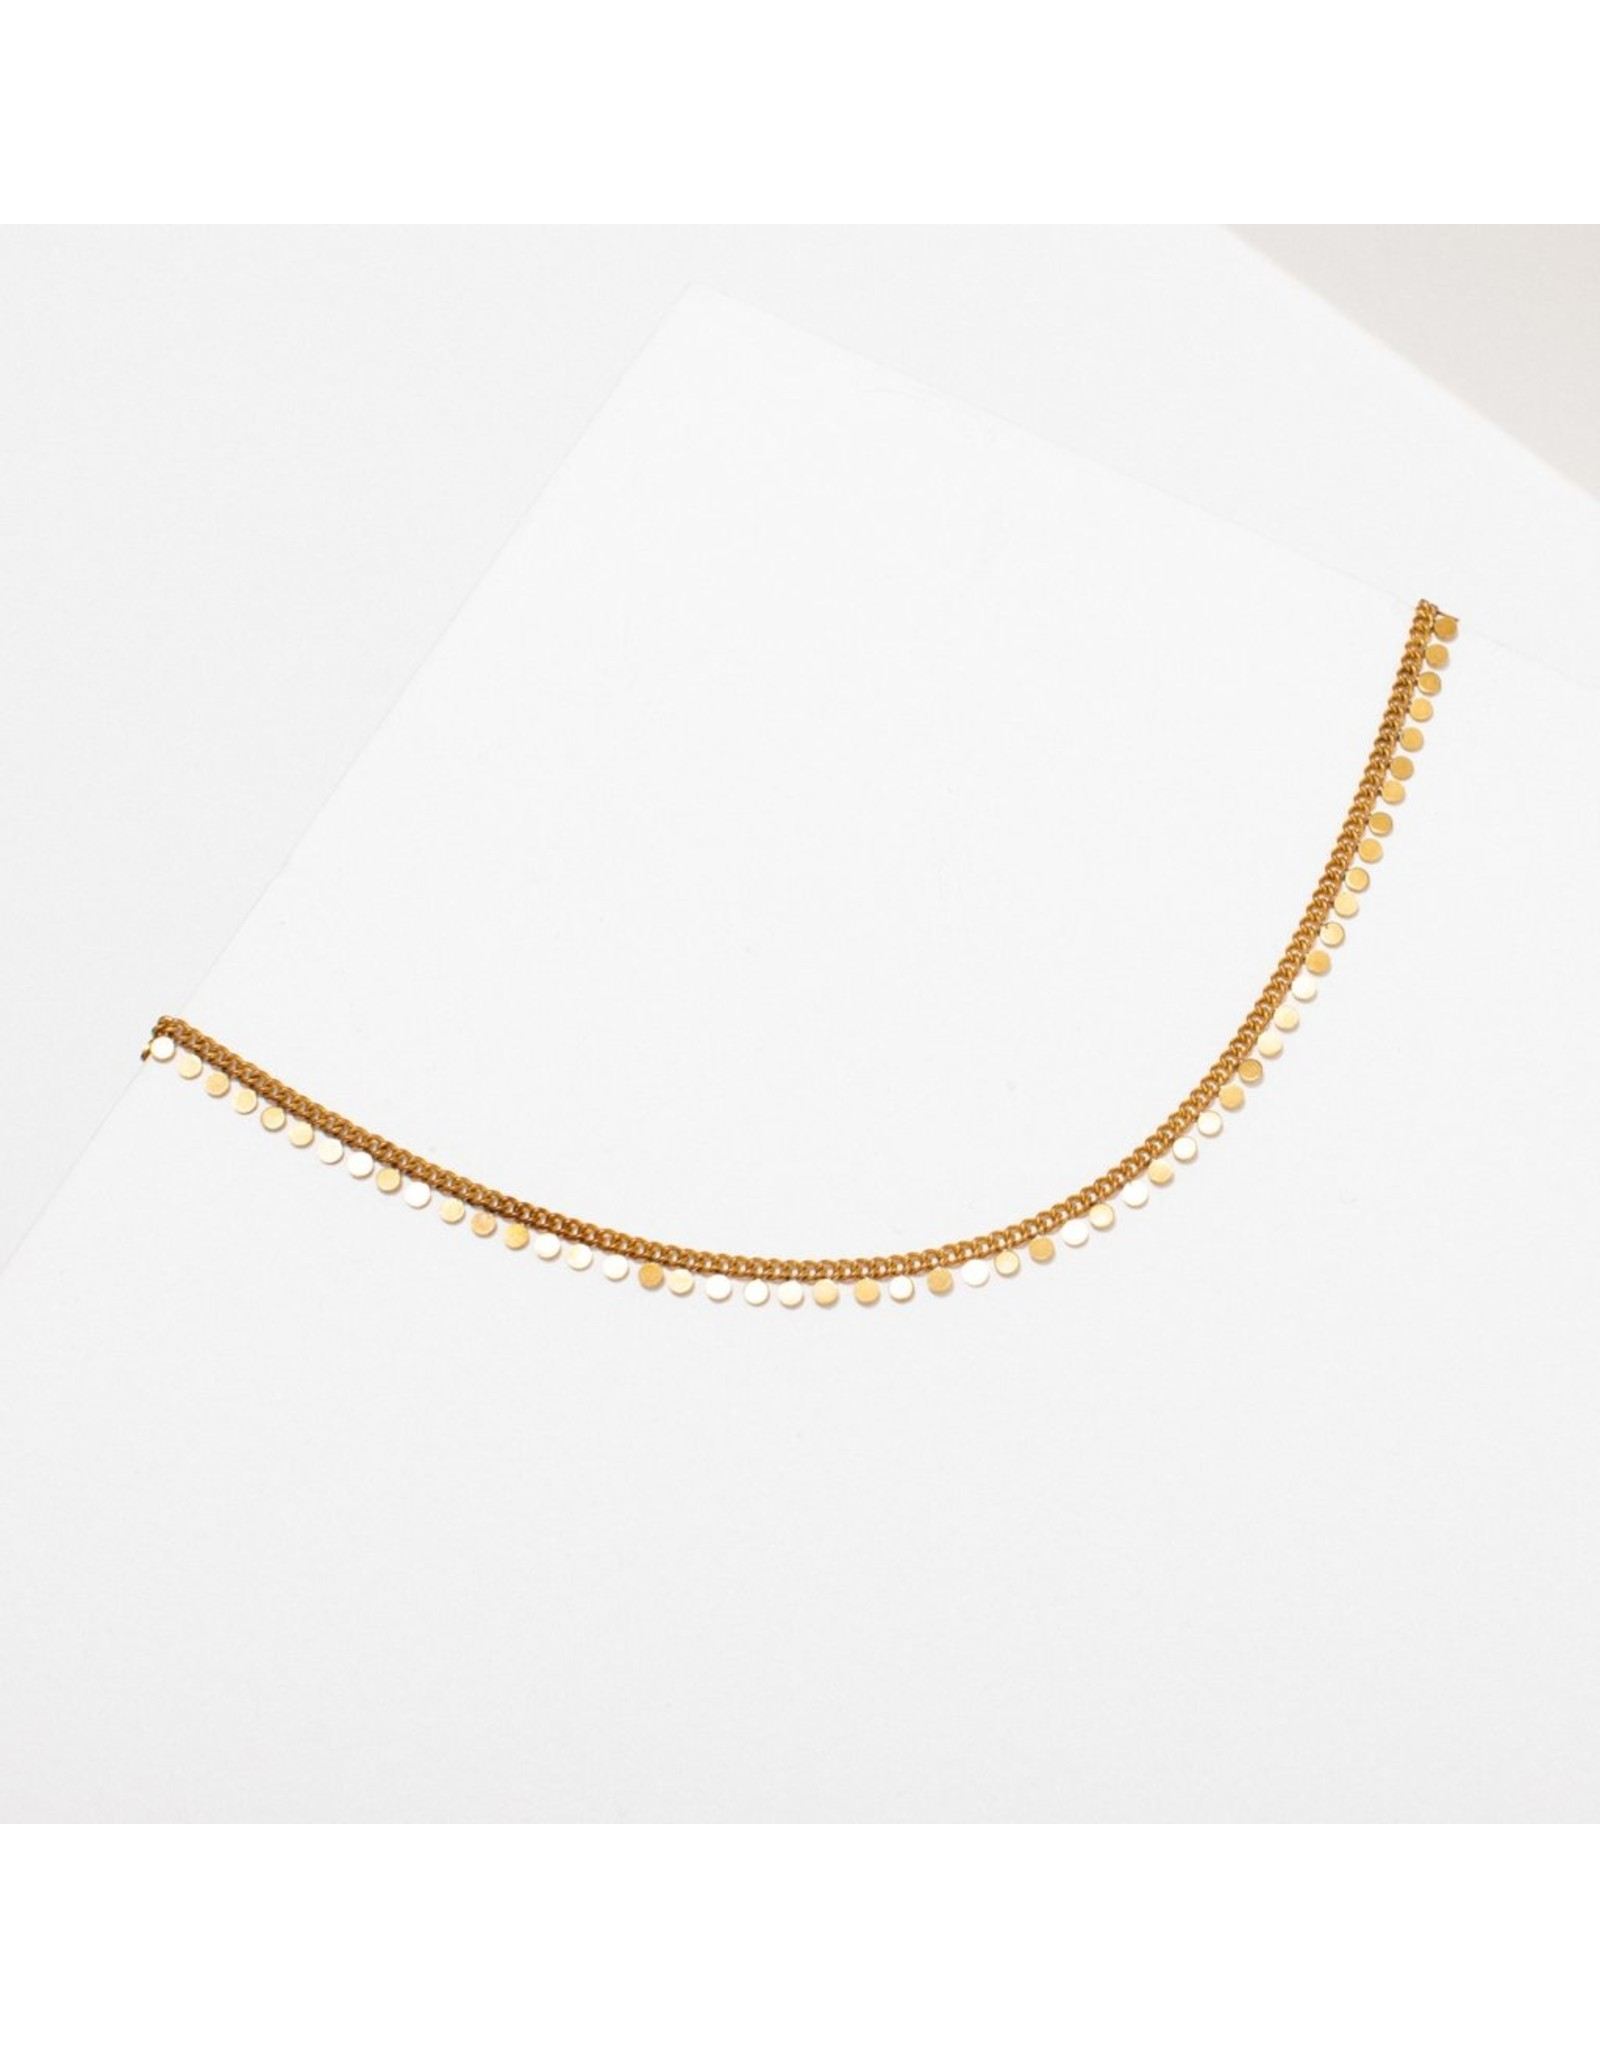 Larissa Loden Bell necklace